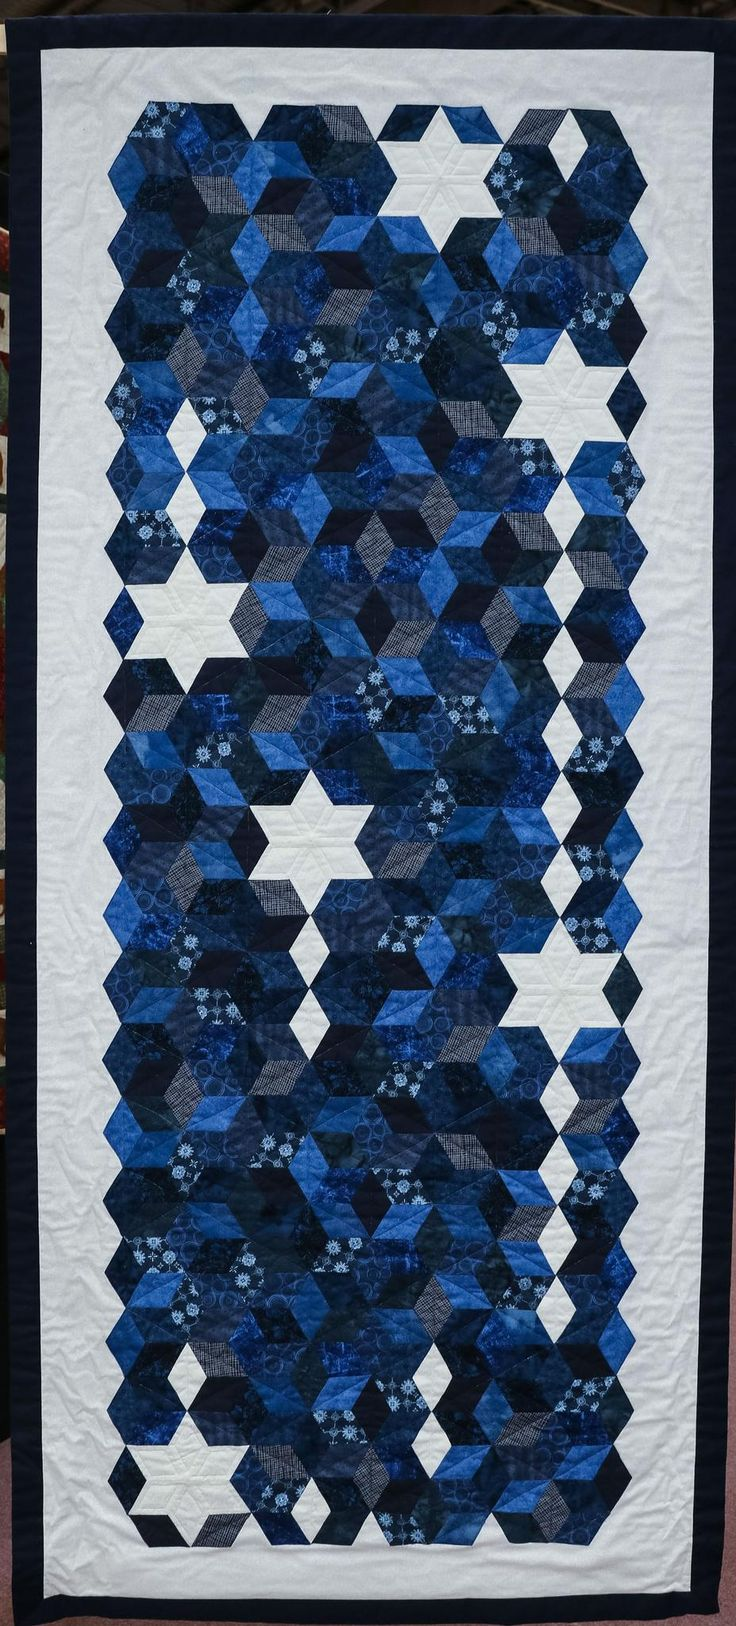 and pin way quilt prairie rose quilts white winding blue farm